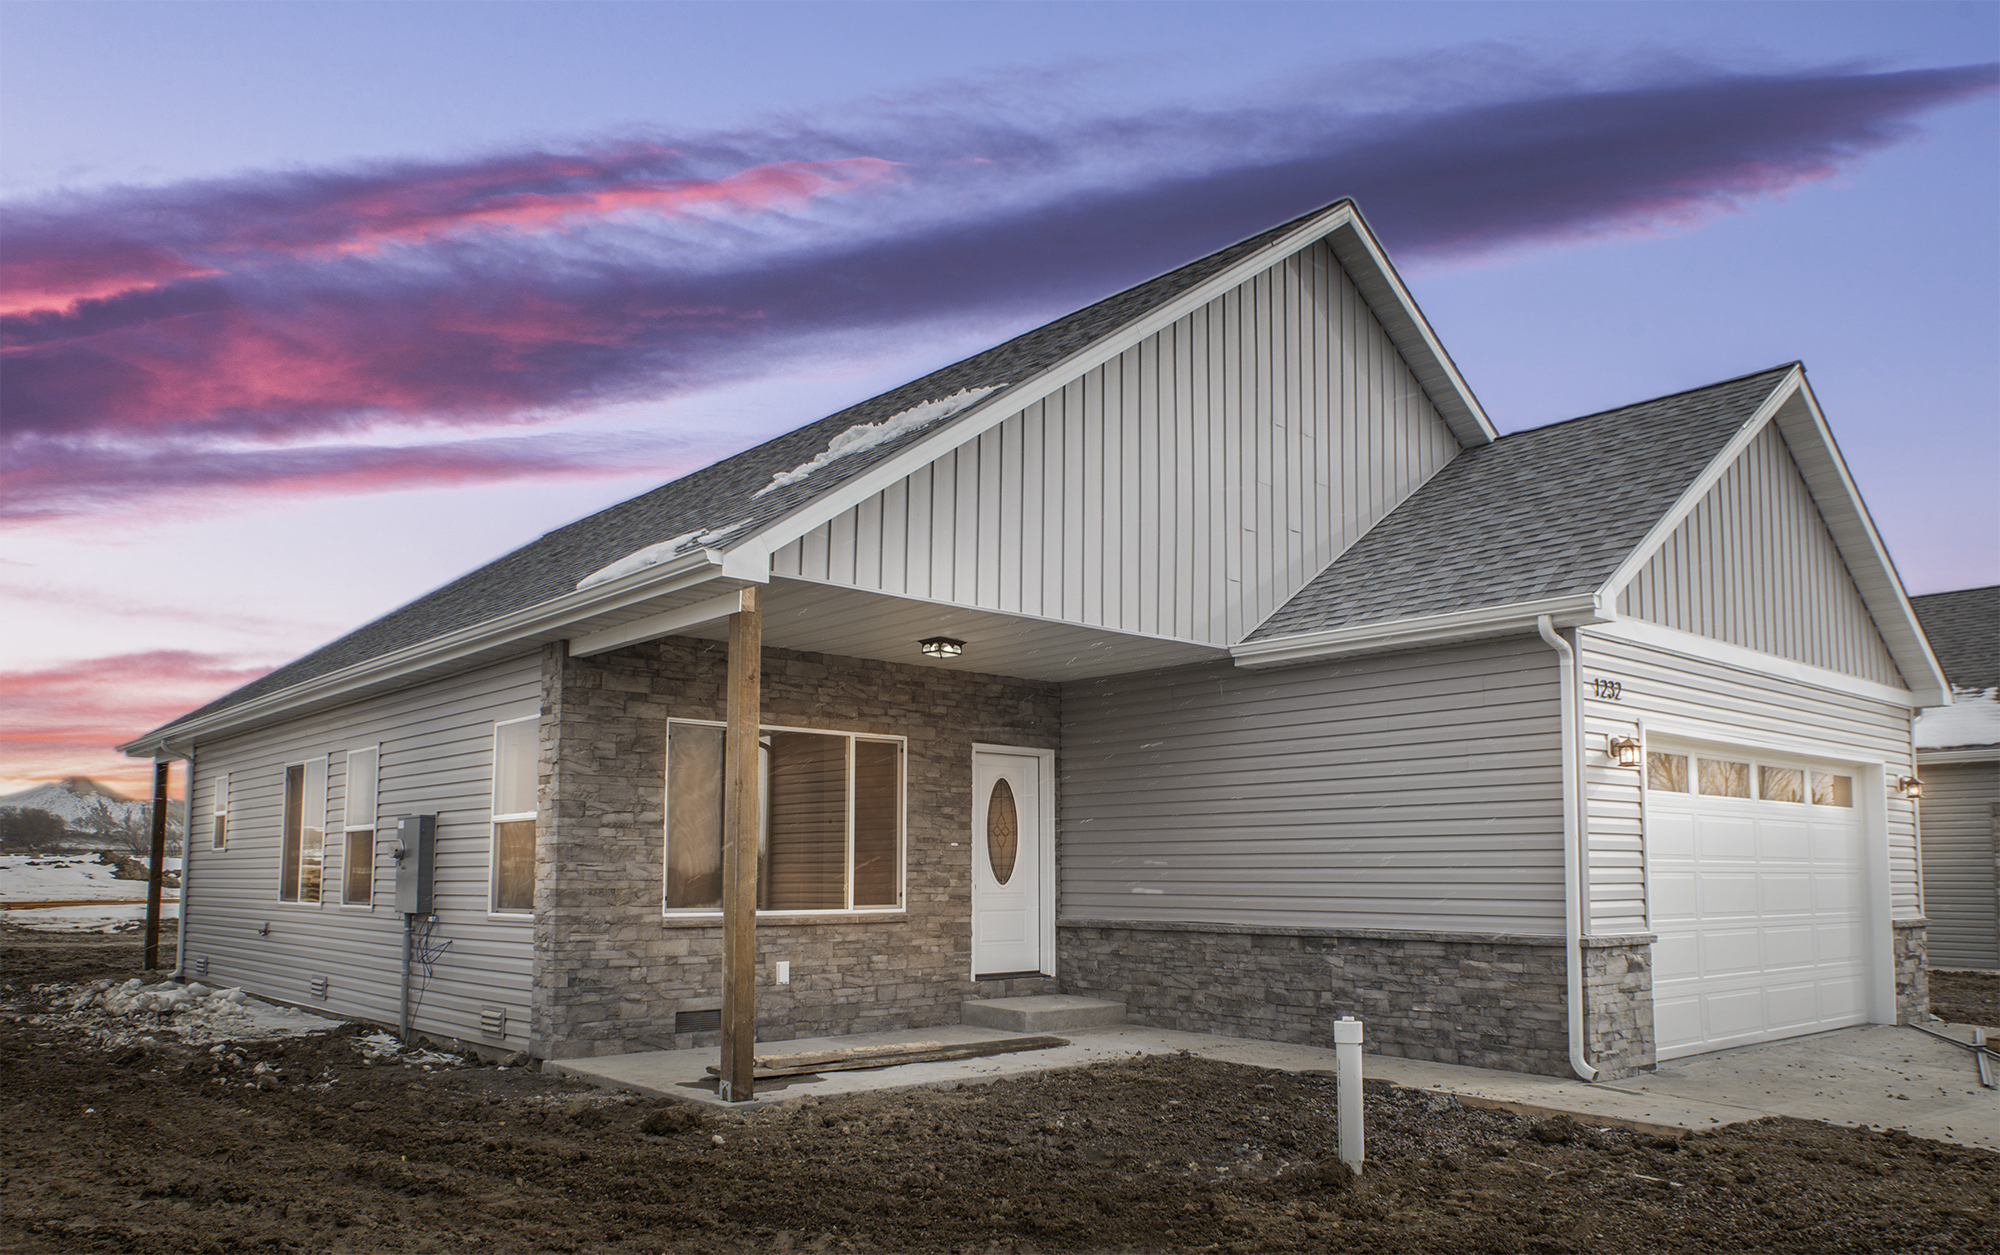 Pre-Built Homes For Sale in Montrose CO